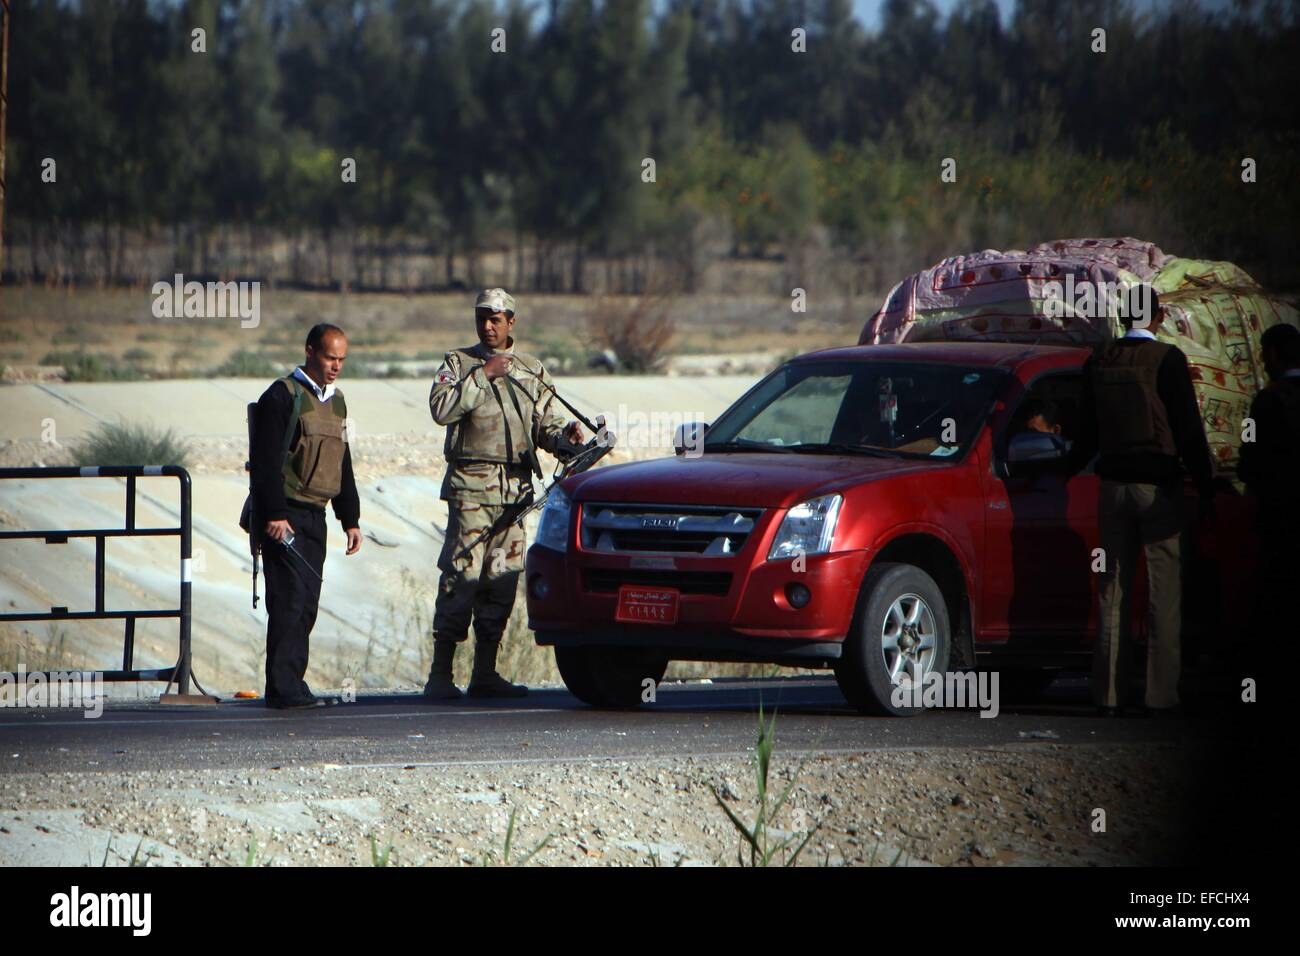 North Sinai, Egypt  31st Jan, 2015  Egyptian security personnel